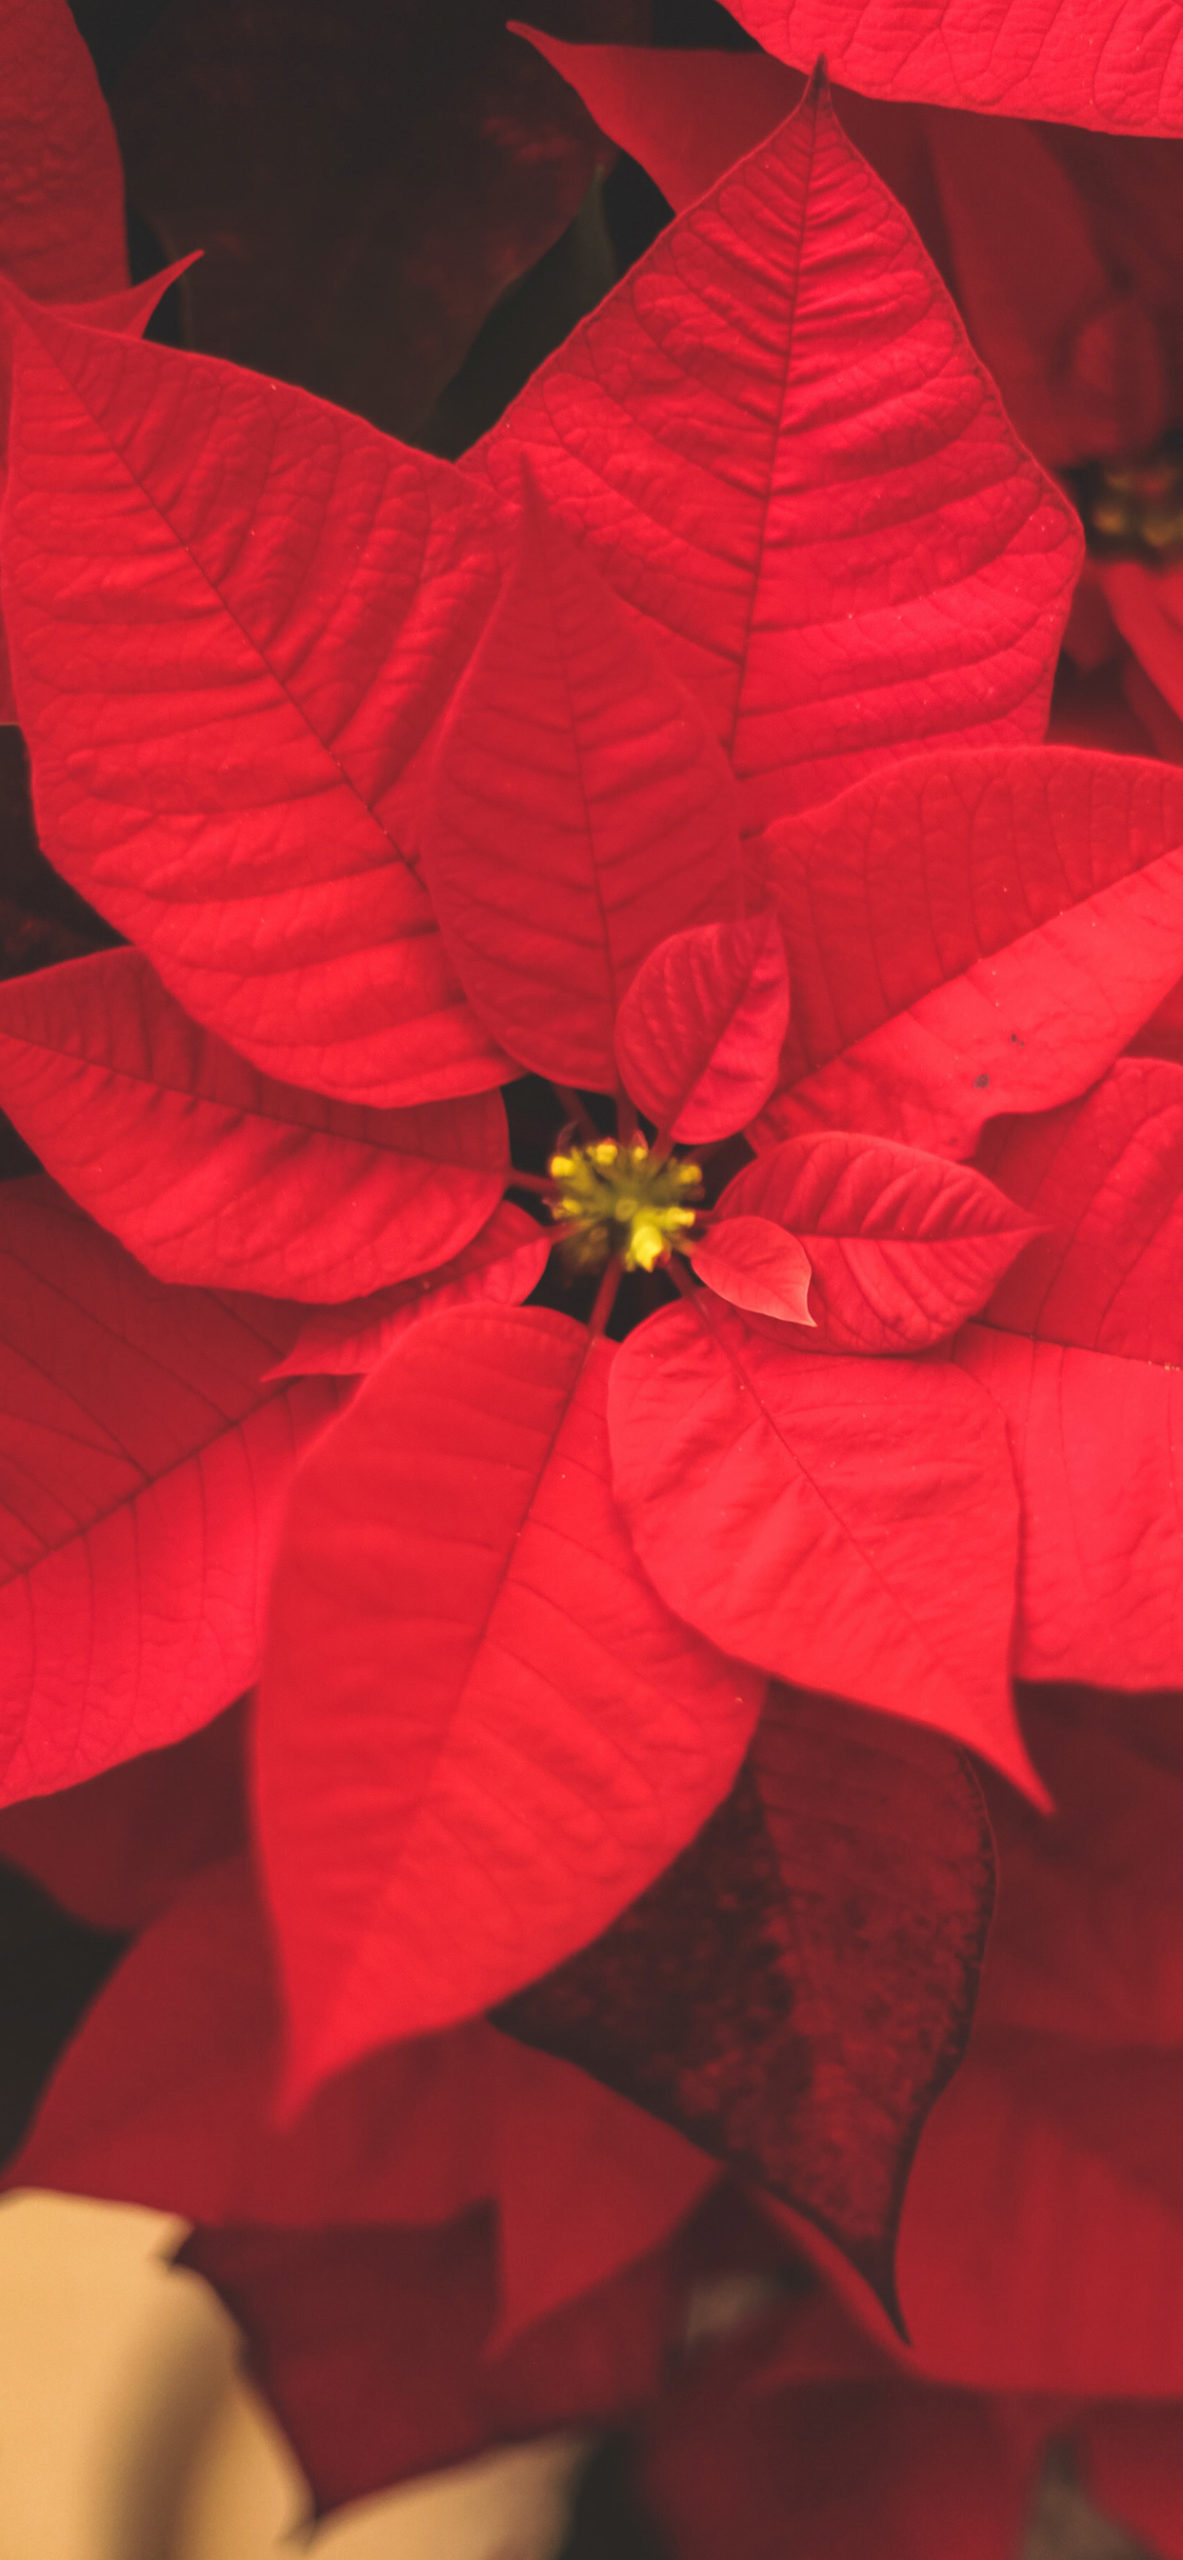 iphone Wallpapers poinsettia scaled Poinsettia